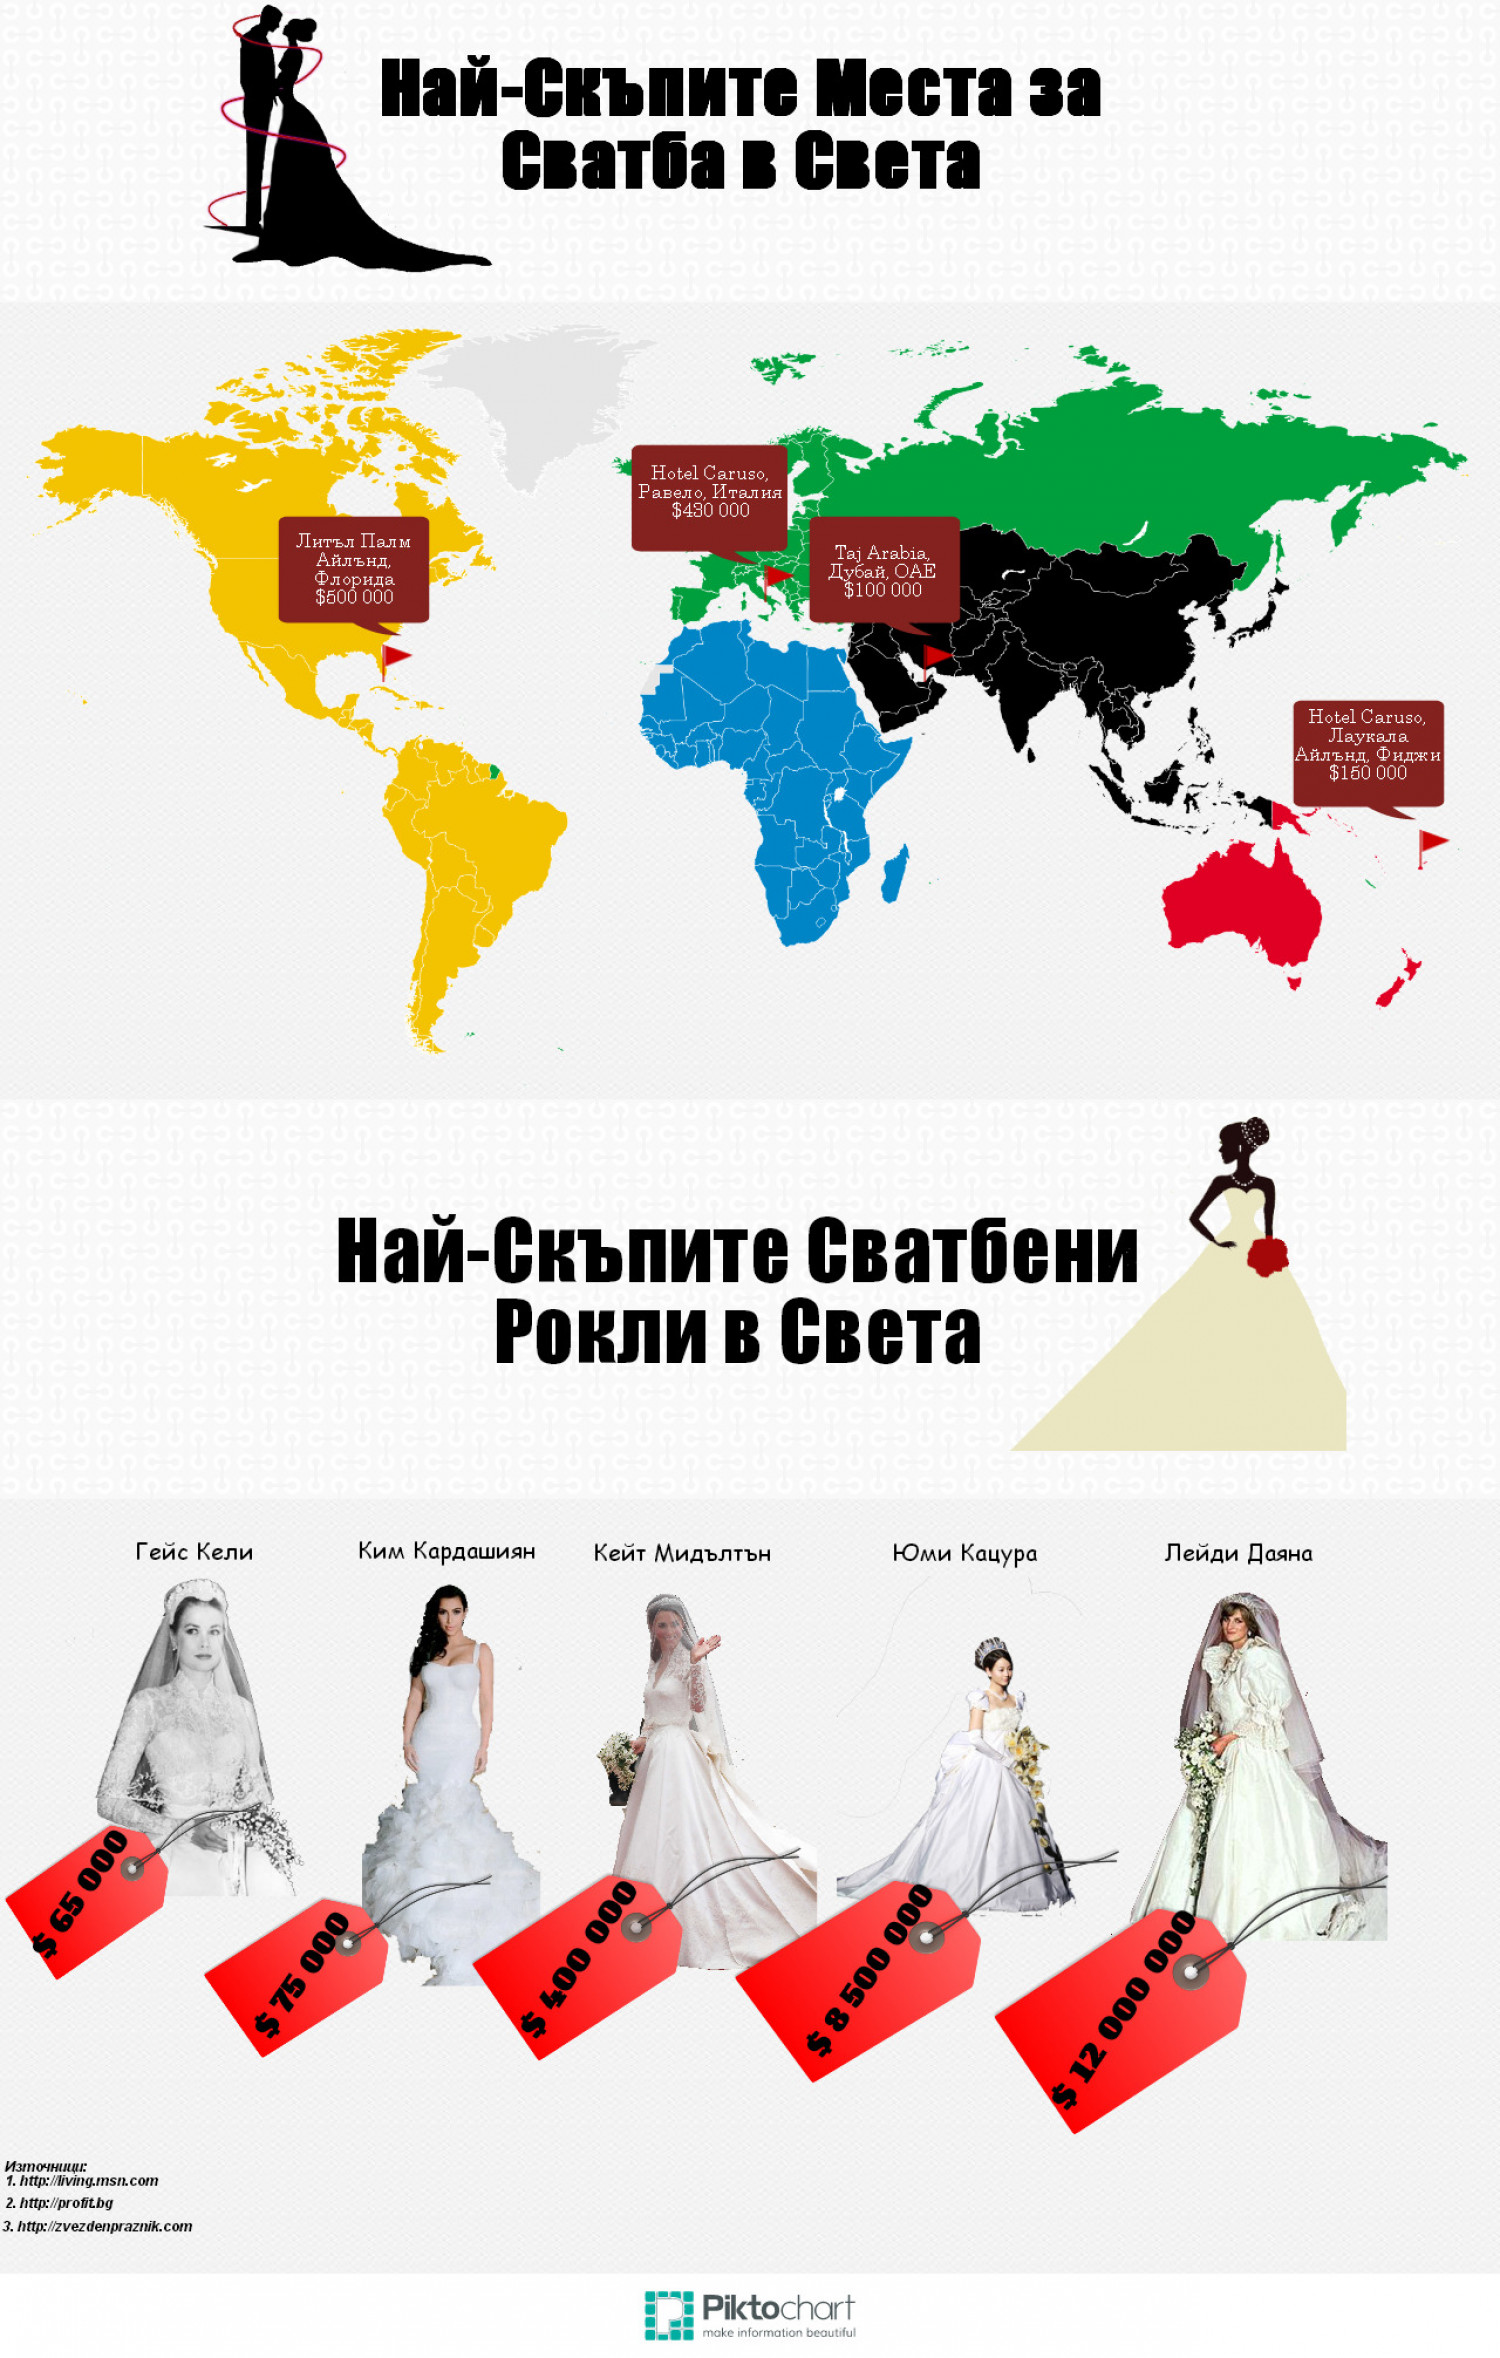 The Most Expensive Wedding Places in The World Infographic